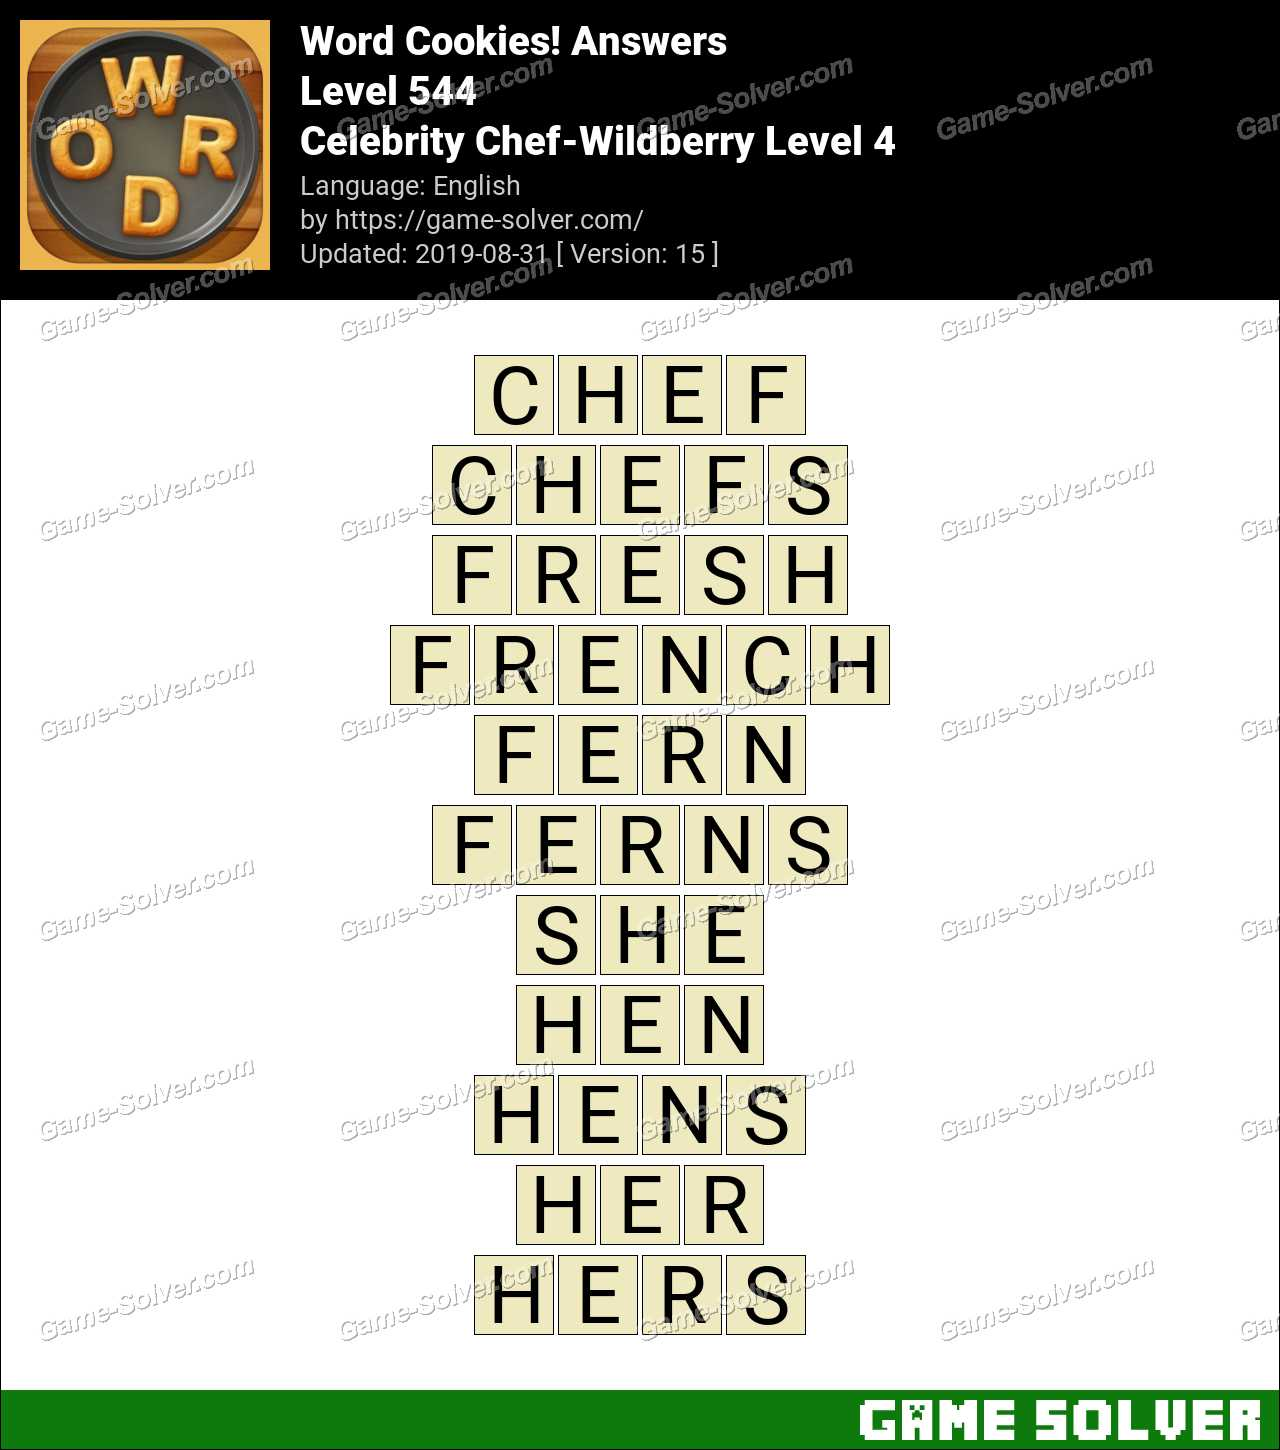 Word Cookies Celebrity Chef-Wildberry Level 4 Answers